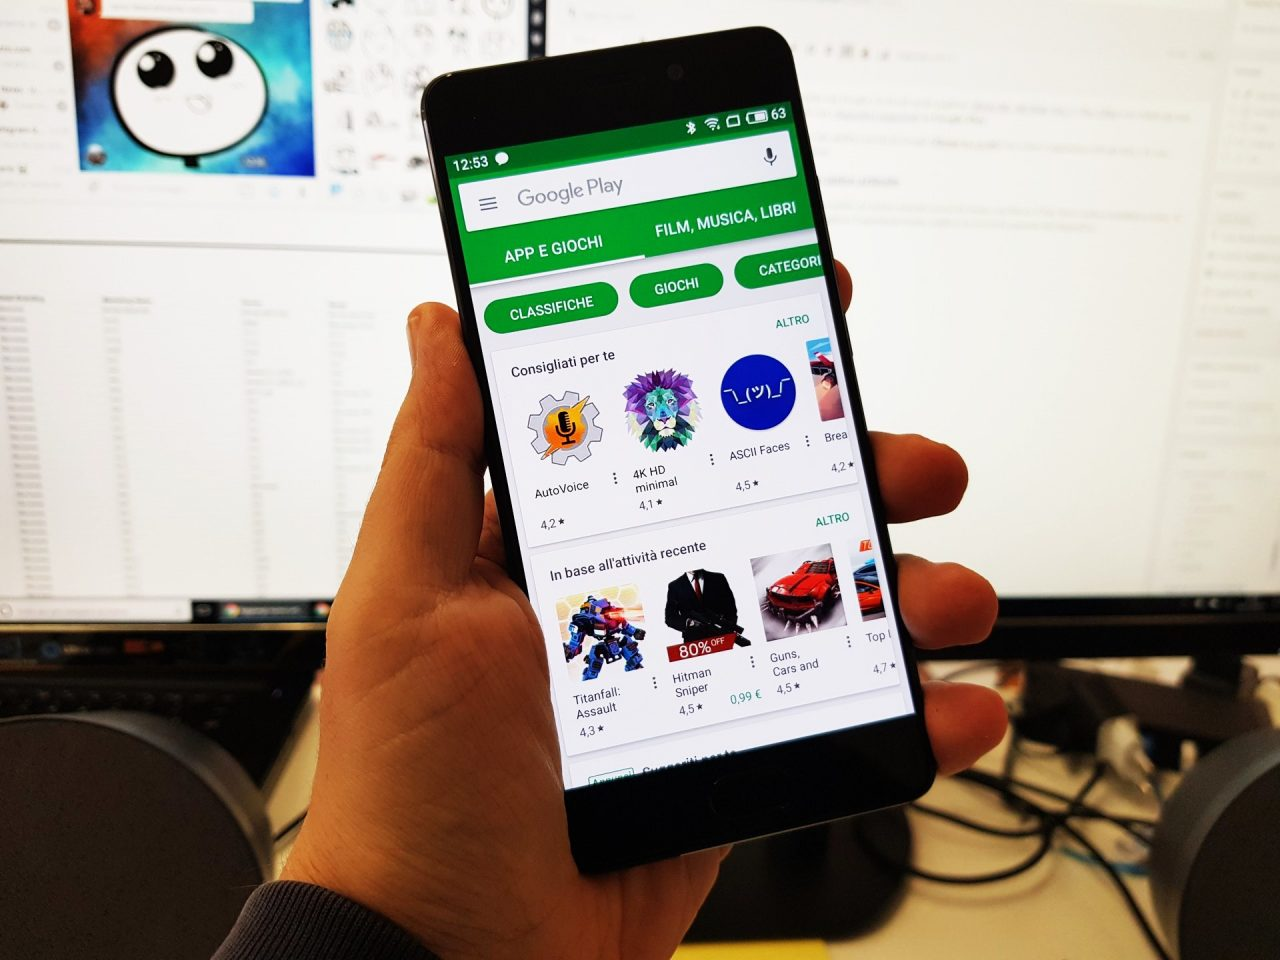 Google play services for meizu